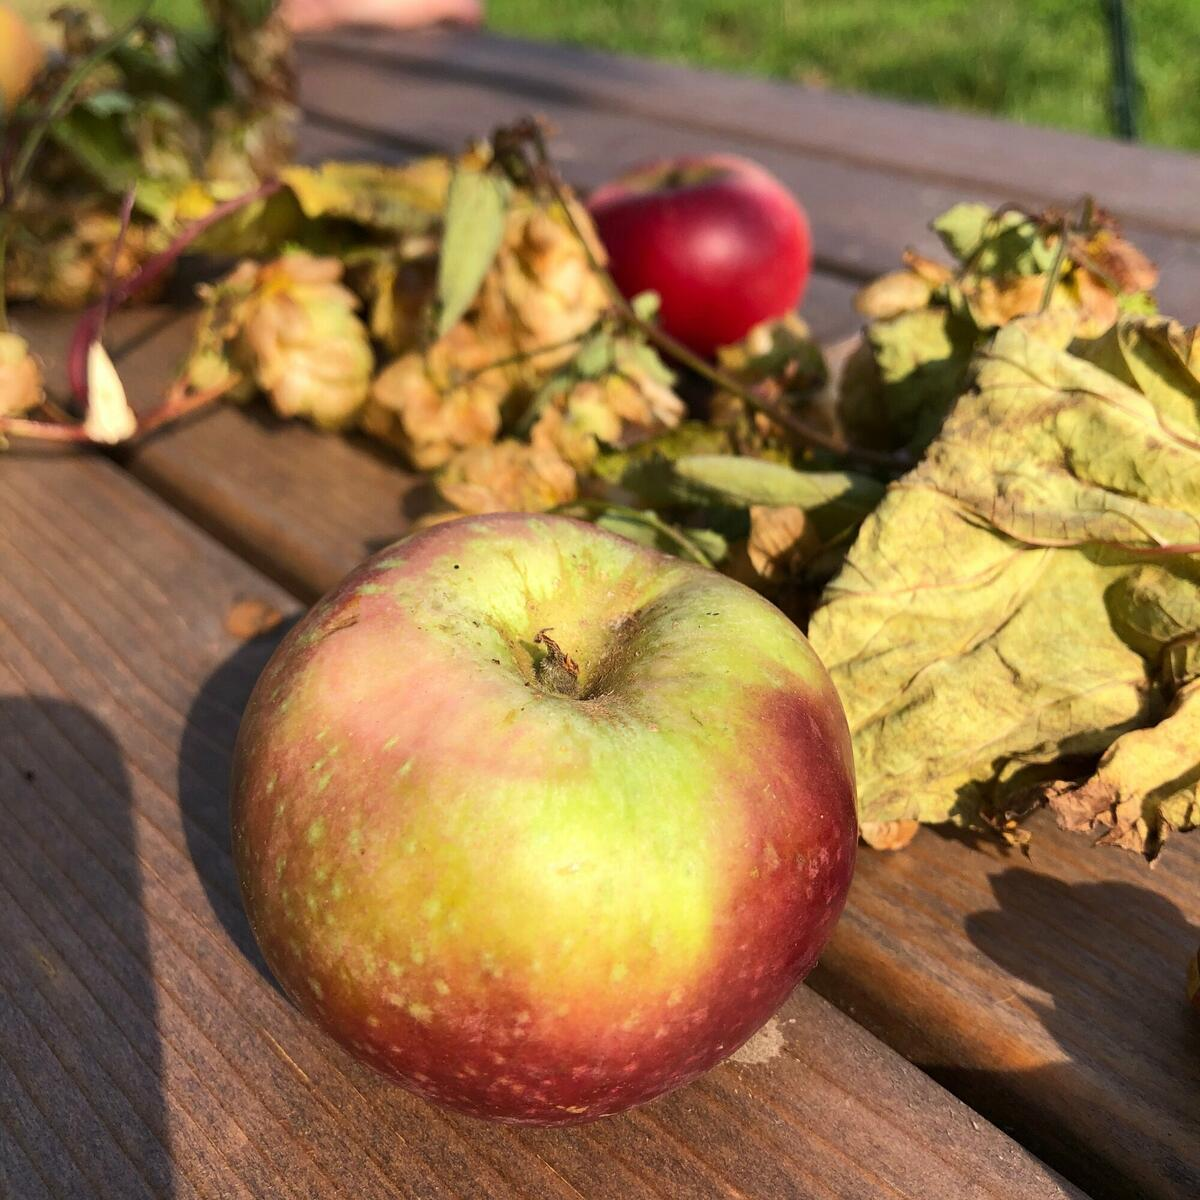 Beauty and no beasts 🍎 Visit in harvest to see the amazing fruit we get to work with and craft our ciders from